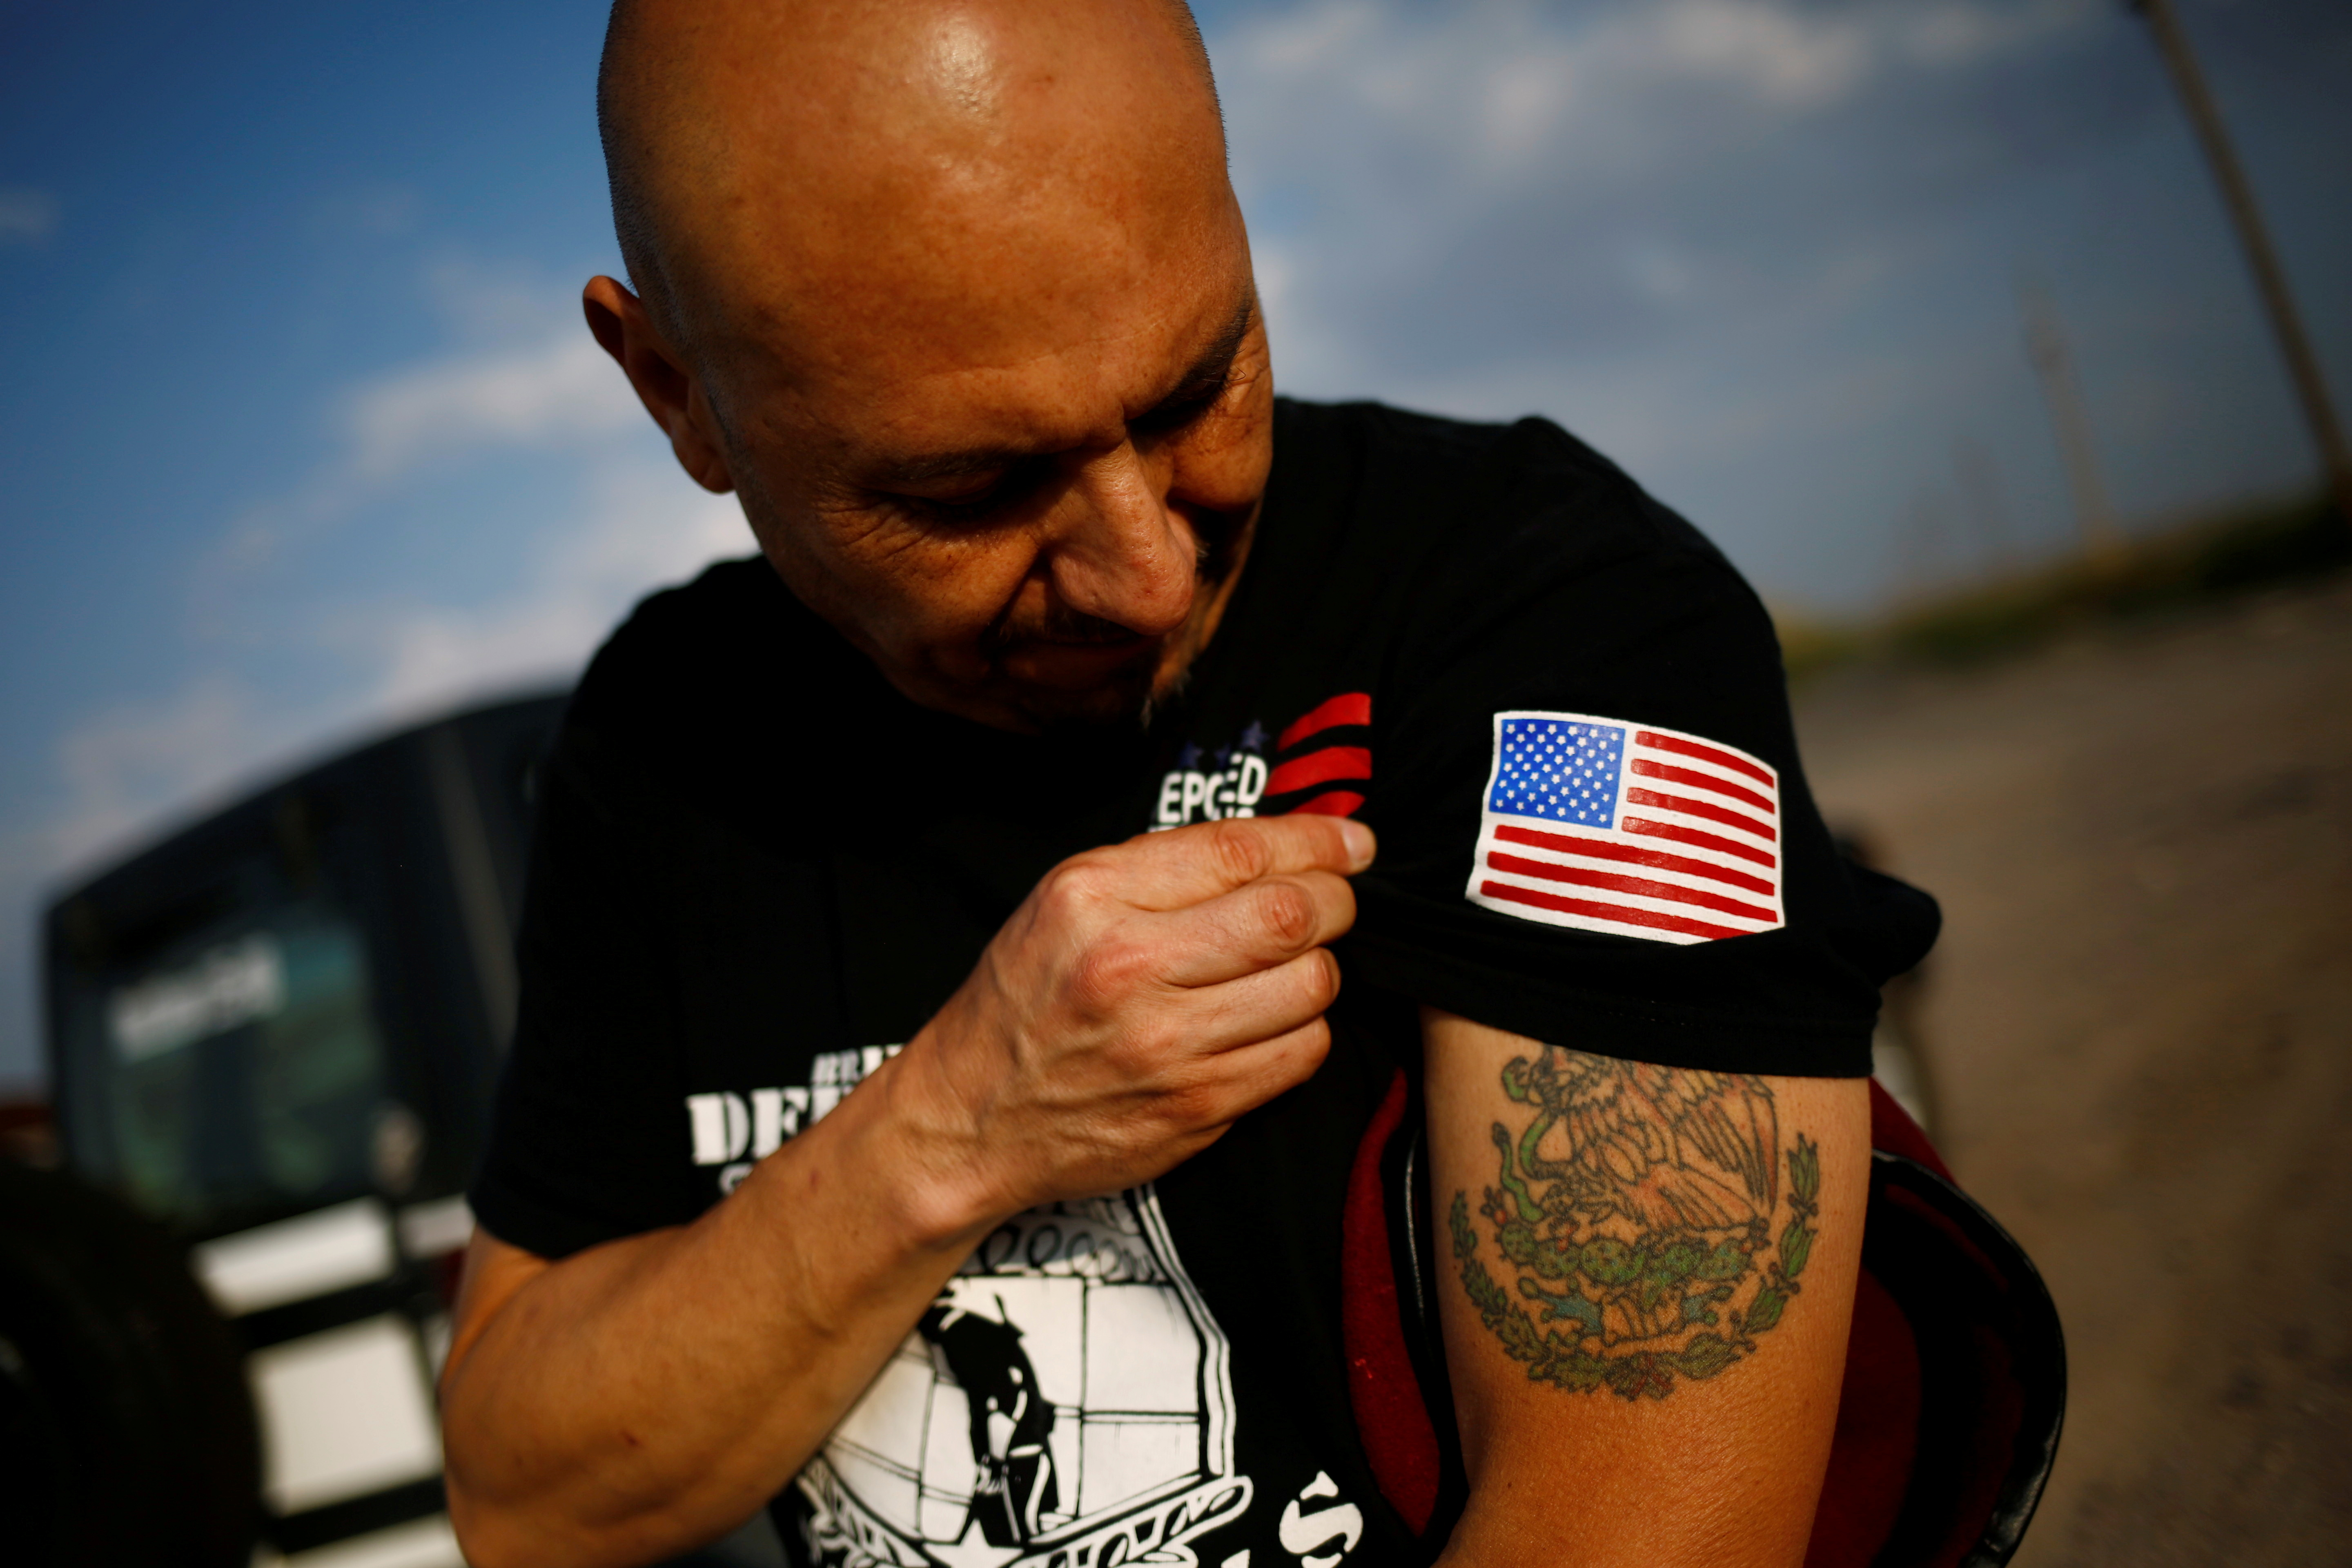 Hector Barajas, a veteran soldier of Mexican origin who said he served in the U.S Army but ended up being deported and after 14 years was allowed to return, displays the shield of the Mexican flag while takes part in the